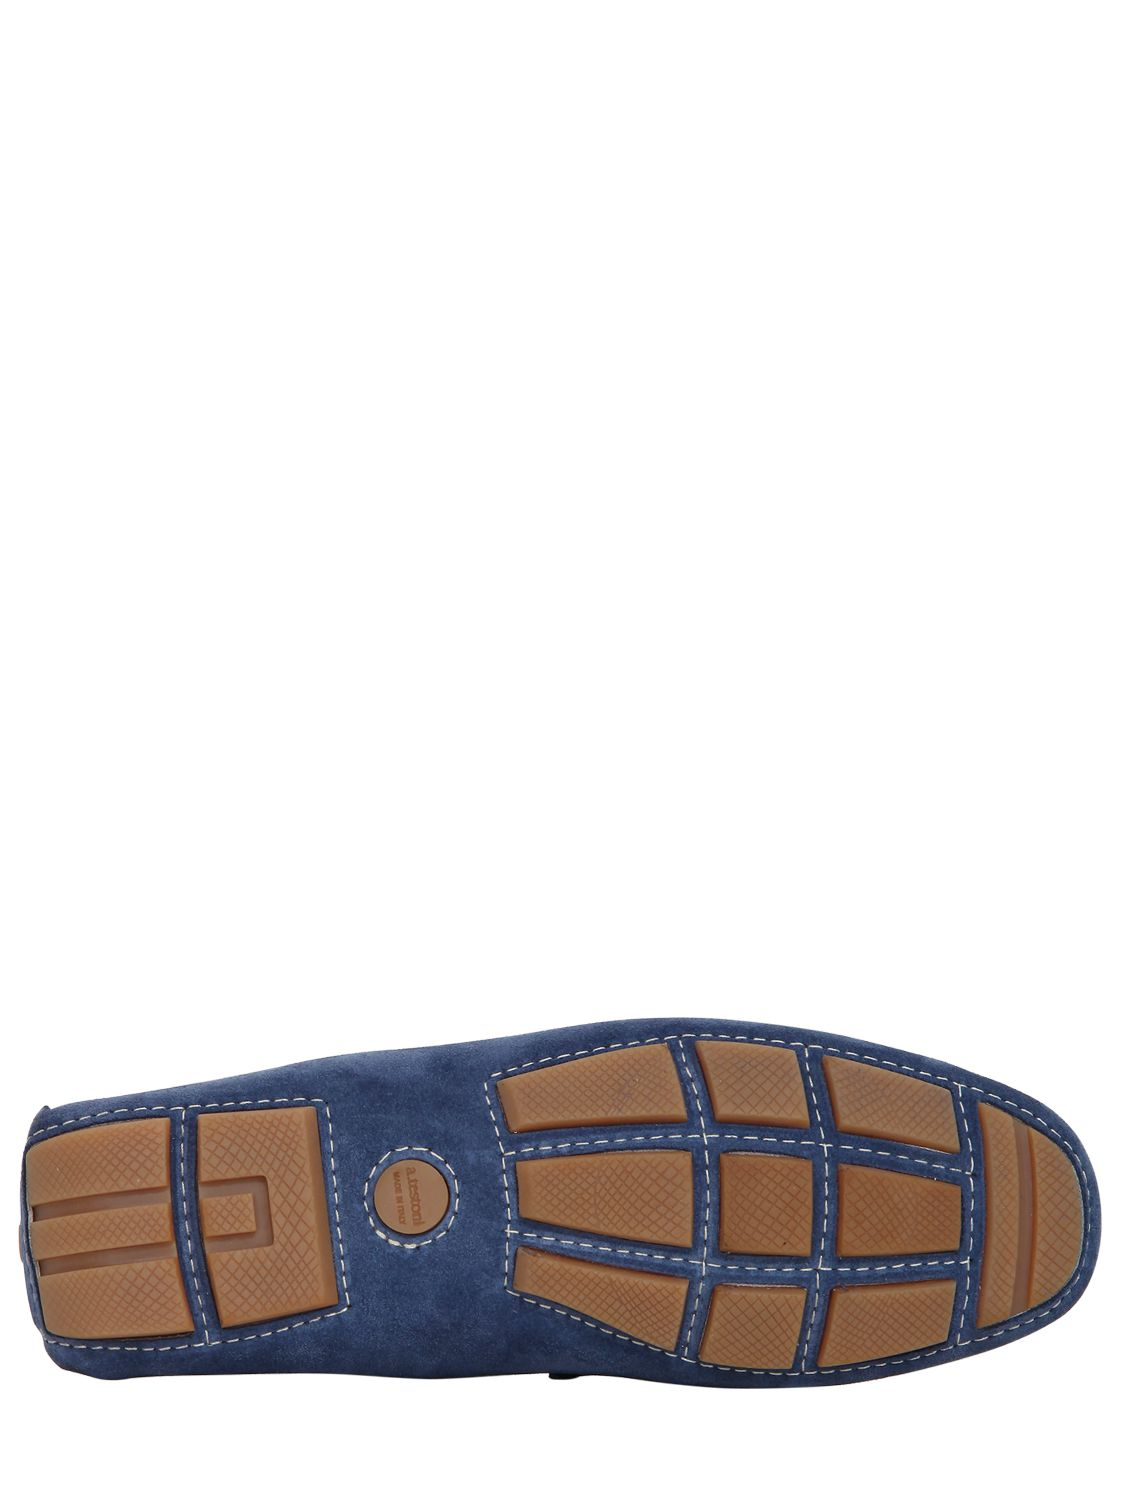 A.Testoni Crest Embroidered Suede Driving Shoes in Blue for Men